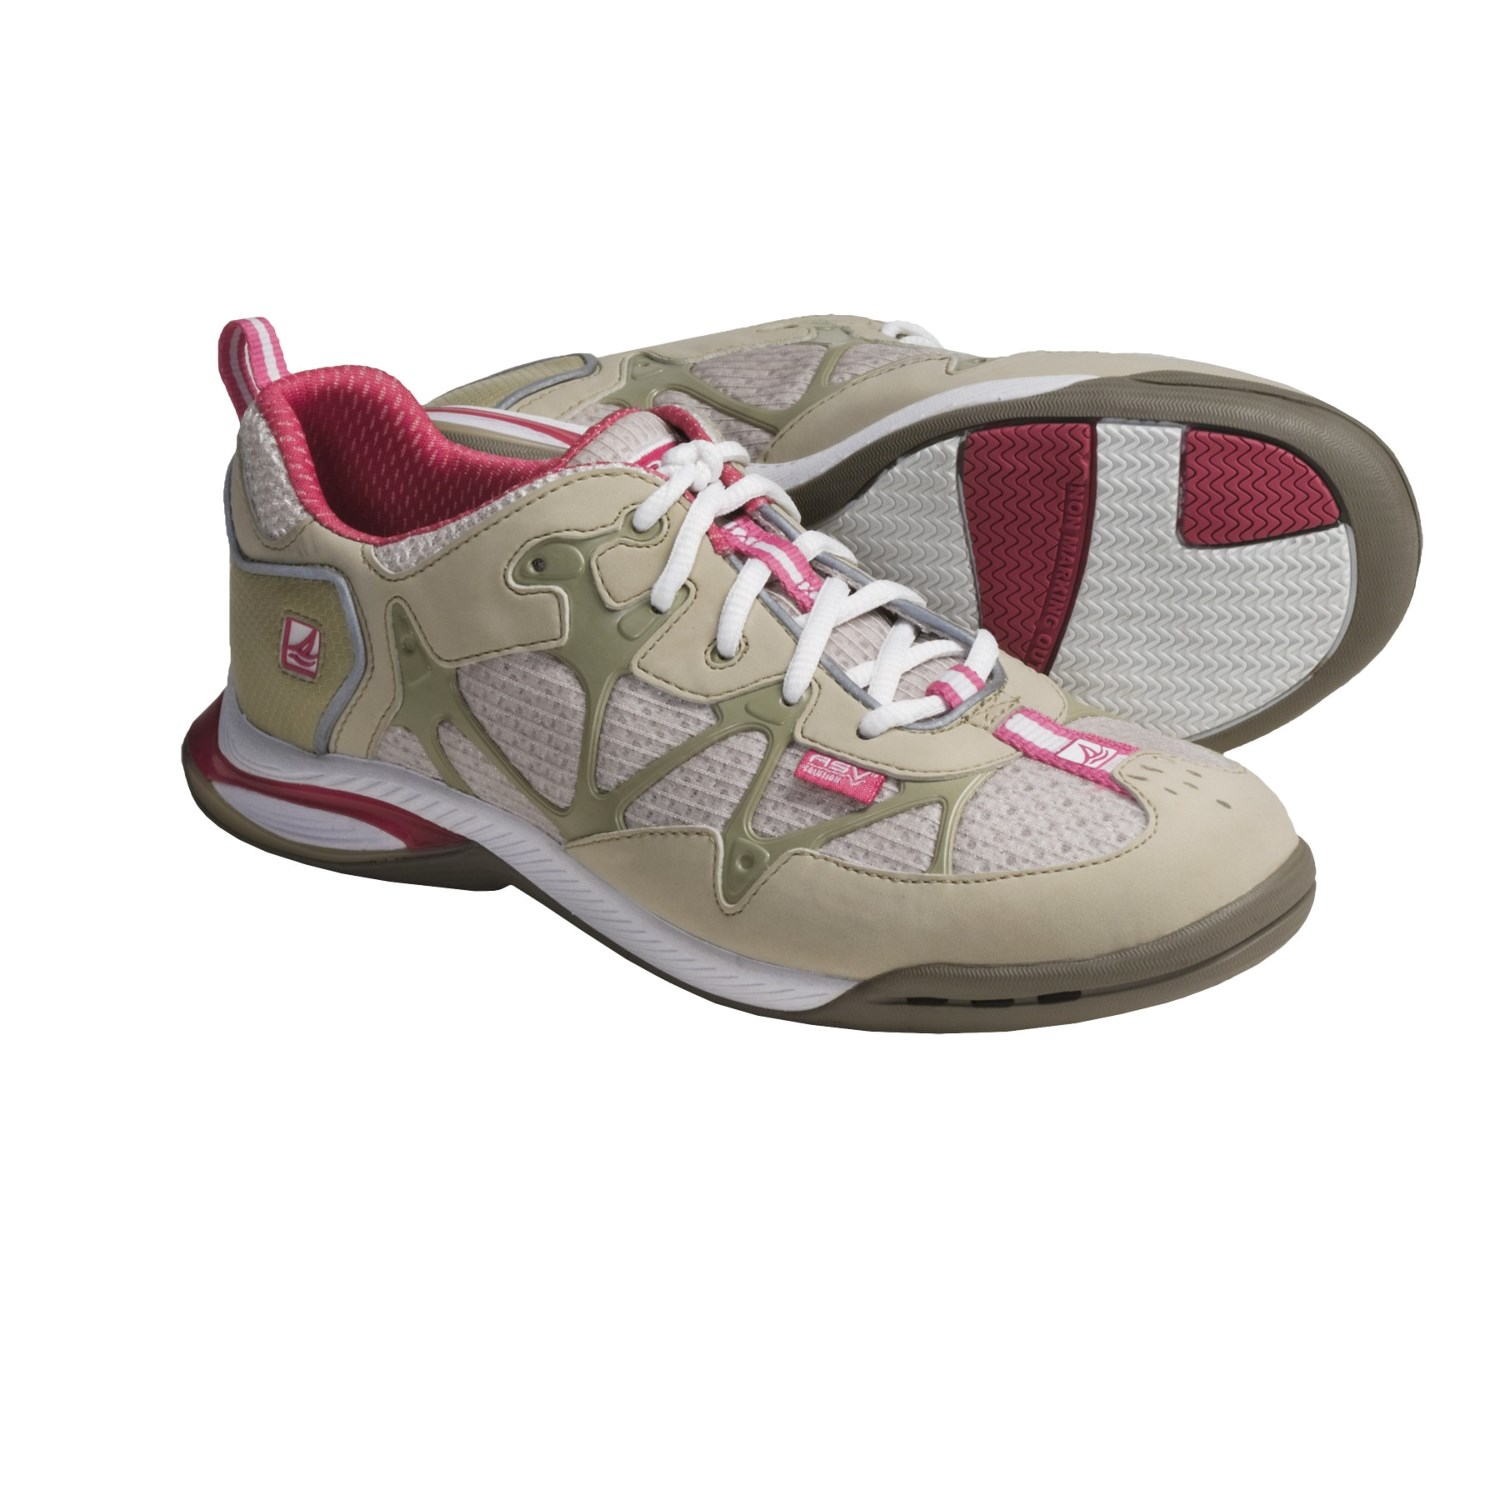 sperry asv athletic boat shoes for 4047f